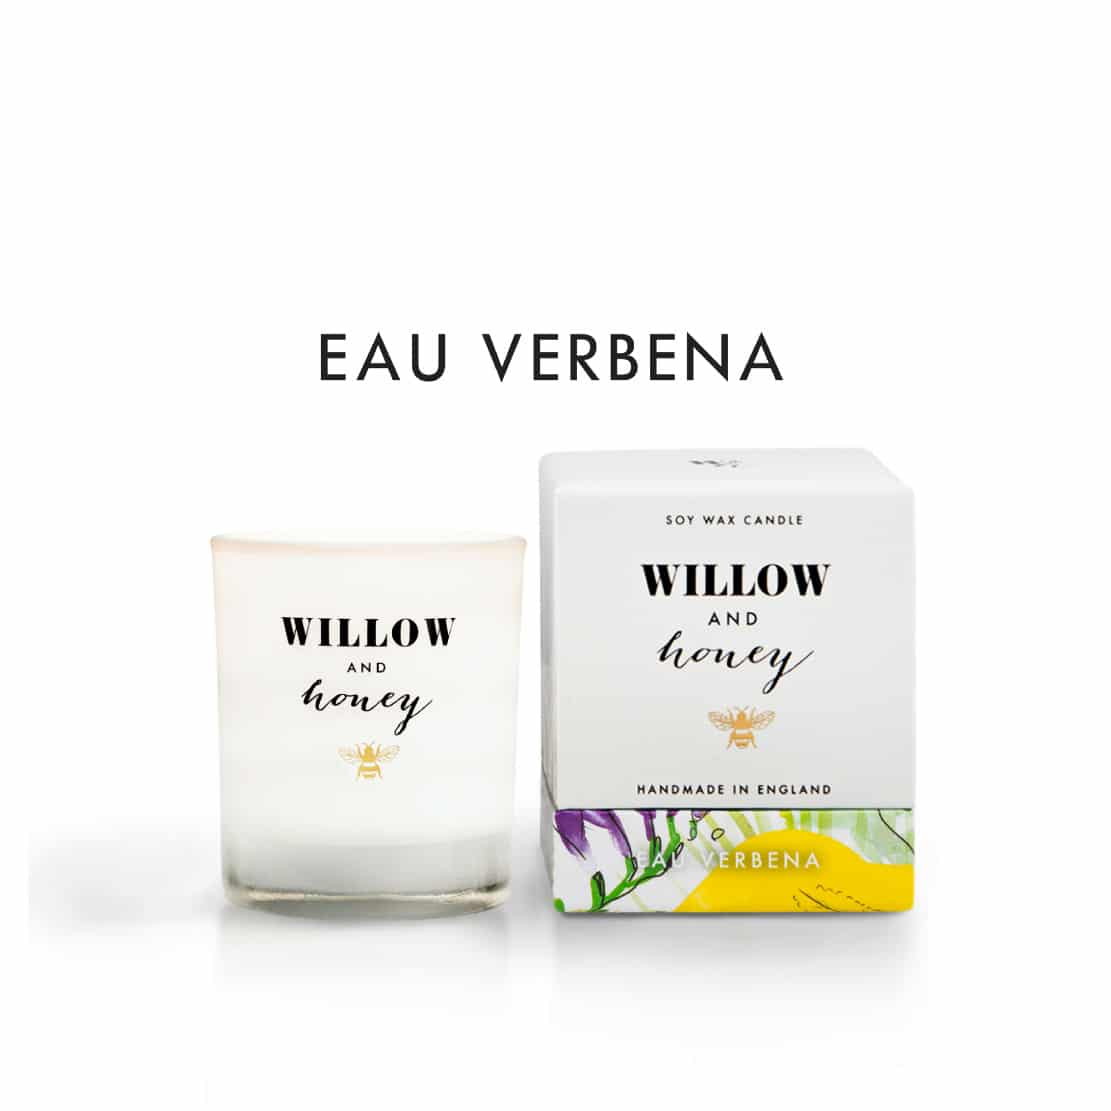 Willow and Honey Eau Verbena Candle 60g